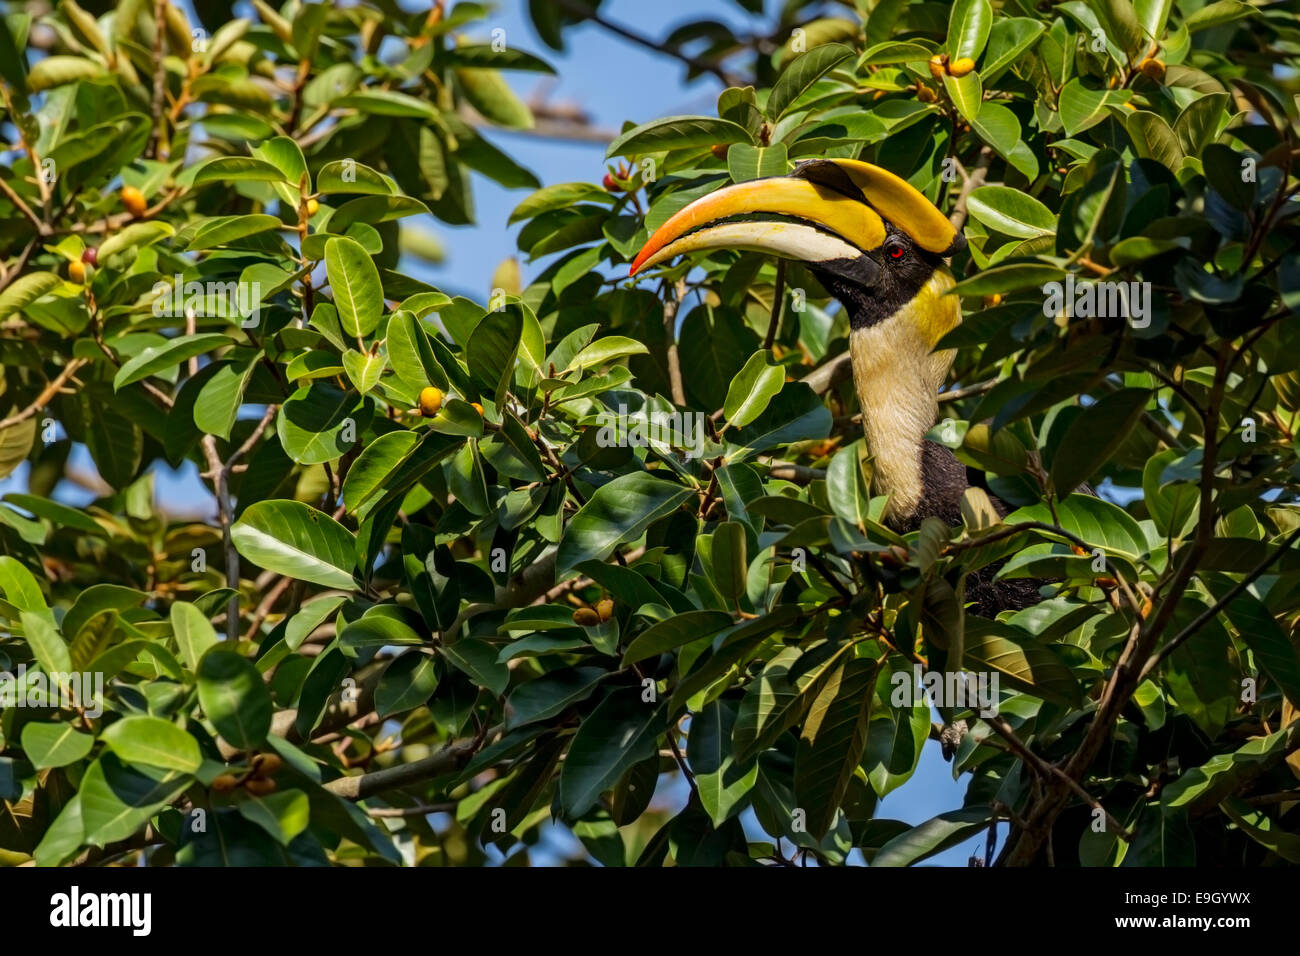 A male Great hornbill (Buceros bicornis) foraging for food in the tropical rainforest canopy - Stock Image